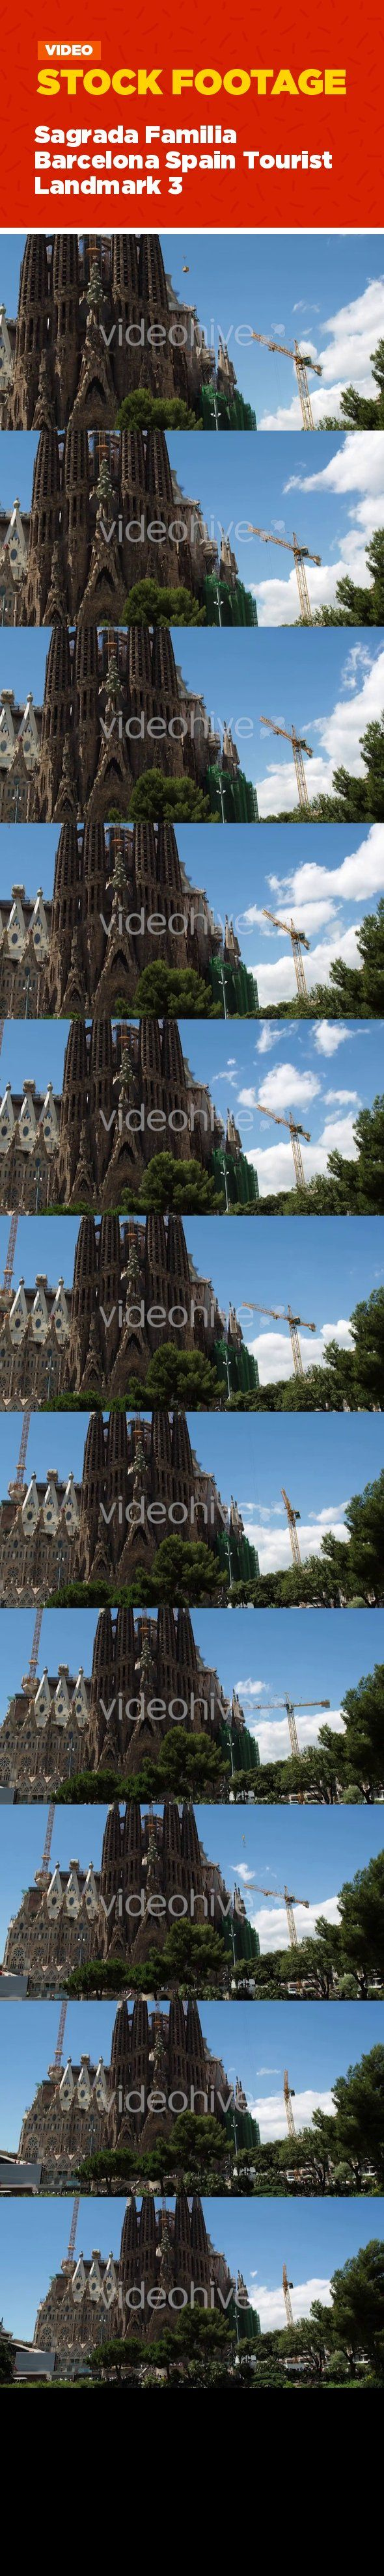 architect, art, building, christianity, church, construction, design, family, history, landmark, religion, spain, style, timelapse, tourist Timelapse of the impressive sagrada familia cathedral designed by gaudi in barcelona, spain.